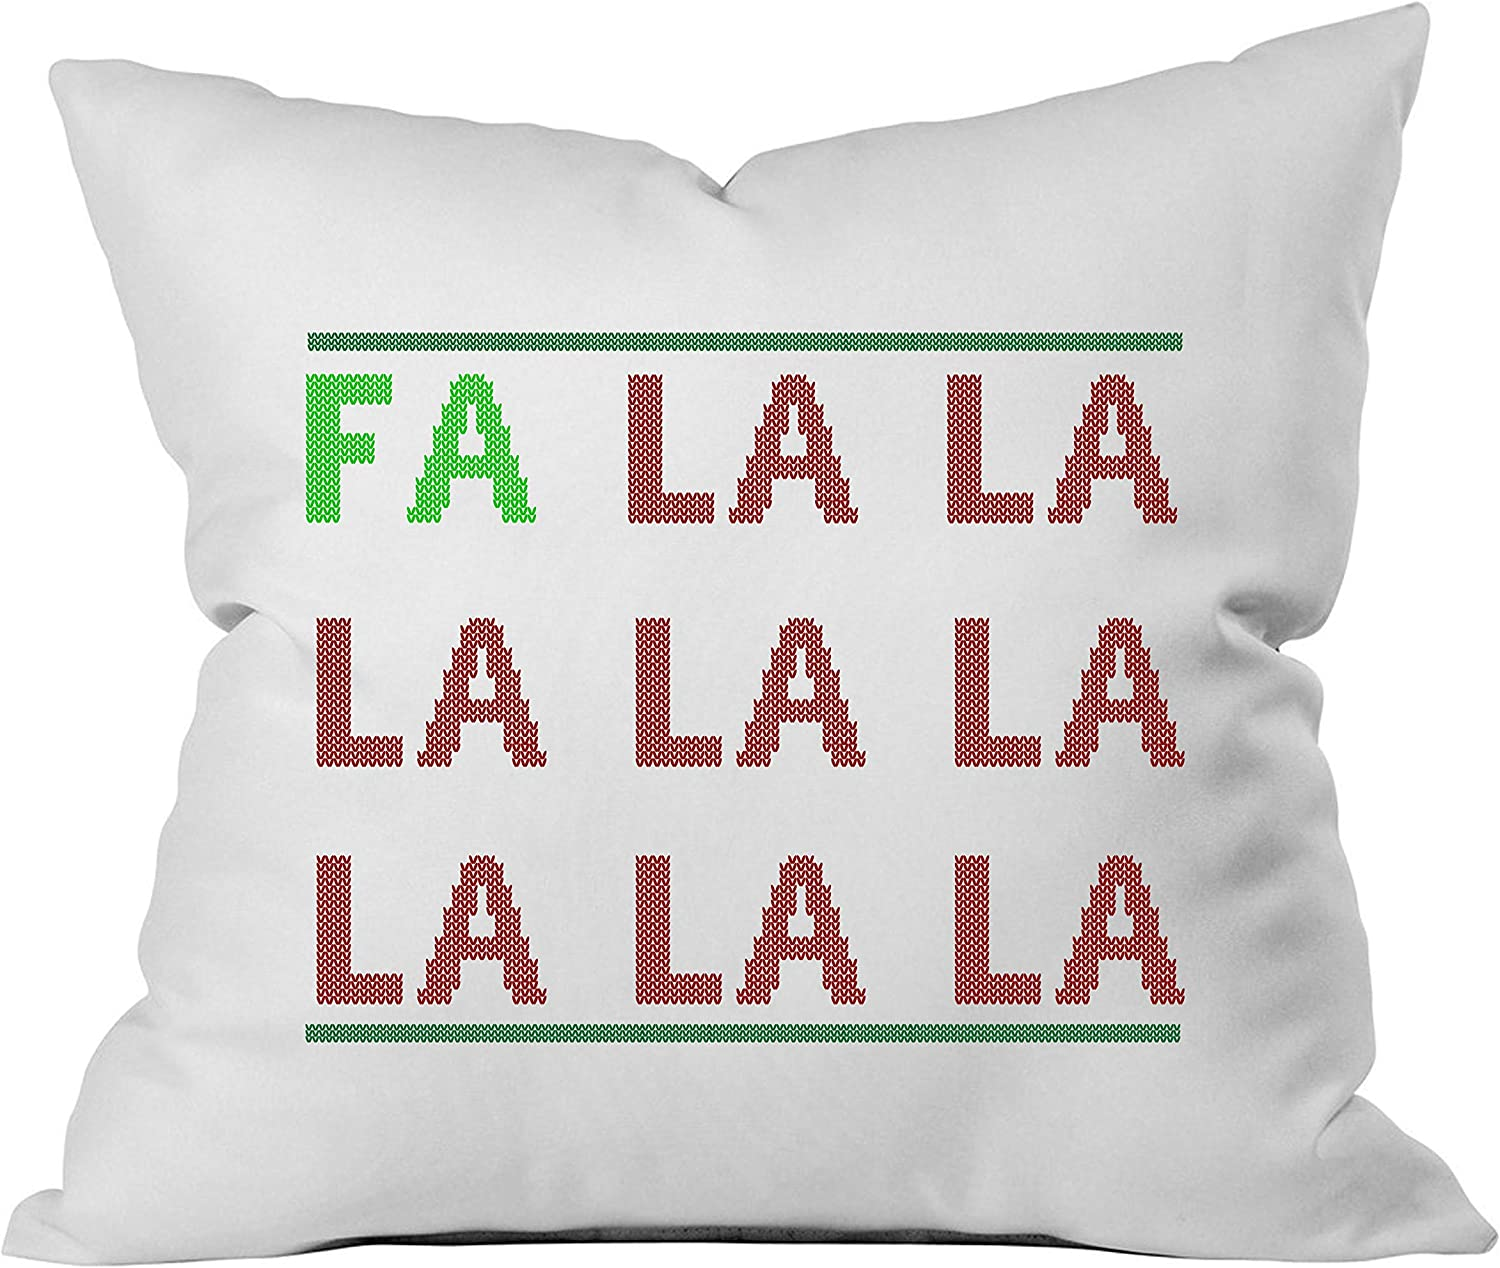 Amazon Com Oh Susannah Fa La La Christmas Throw Pillow Cover 1 18 X 18 Inch Green Red Home Kitchen